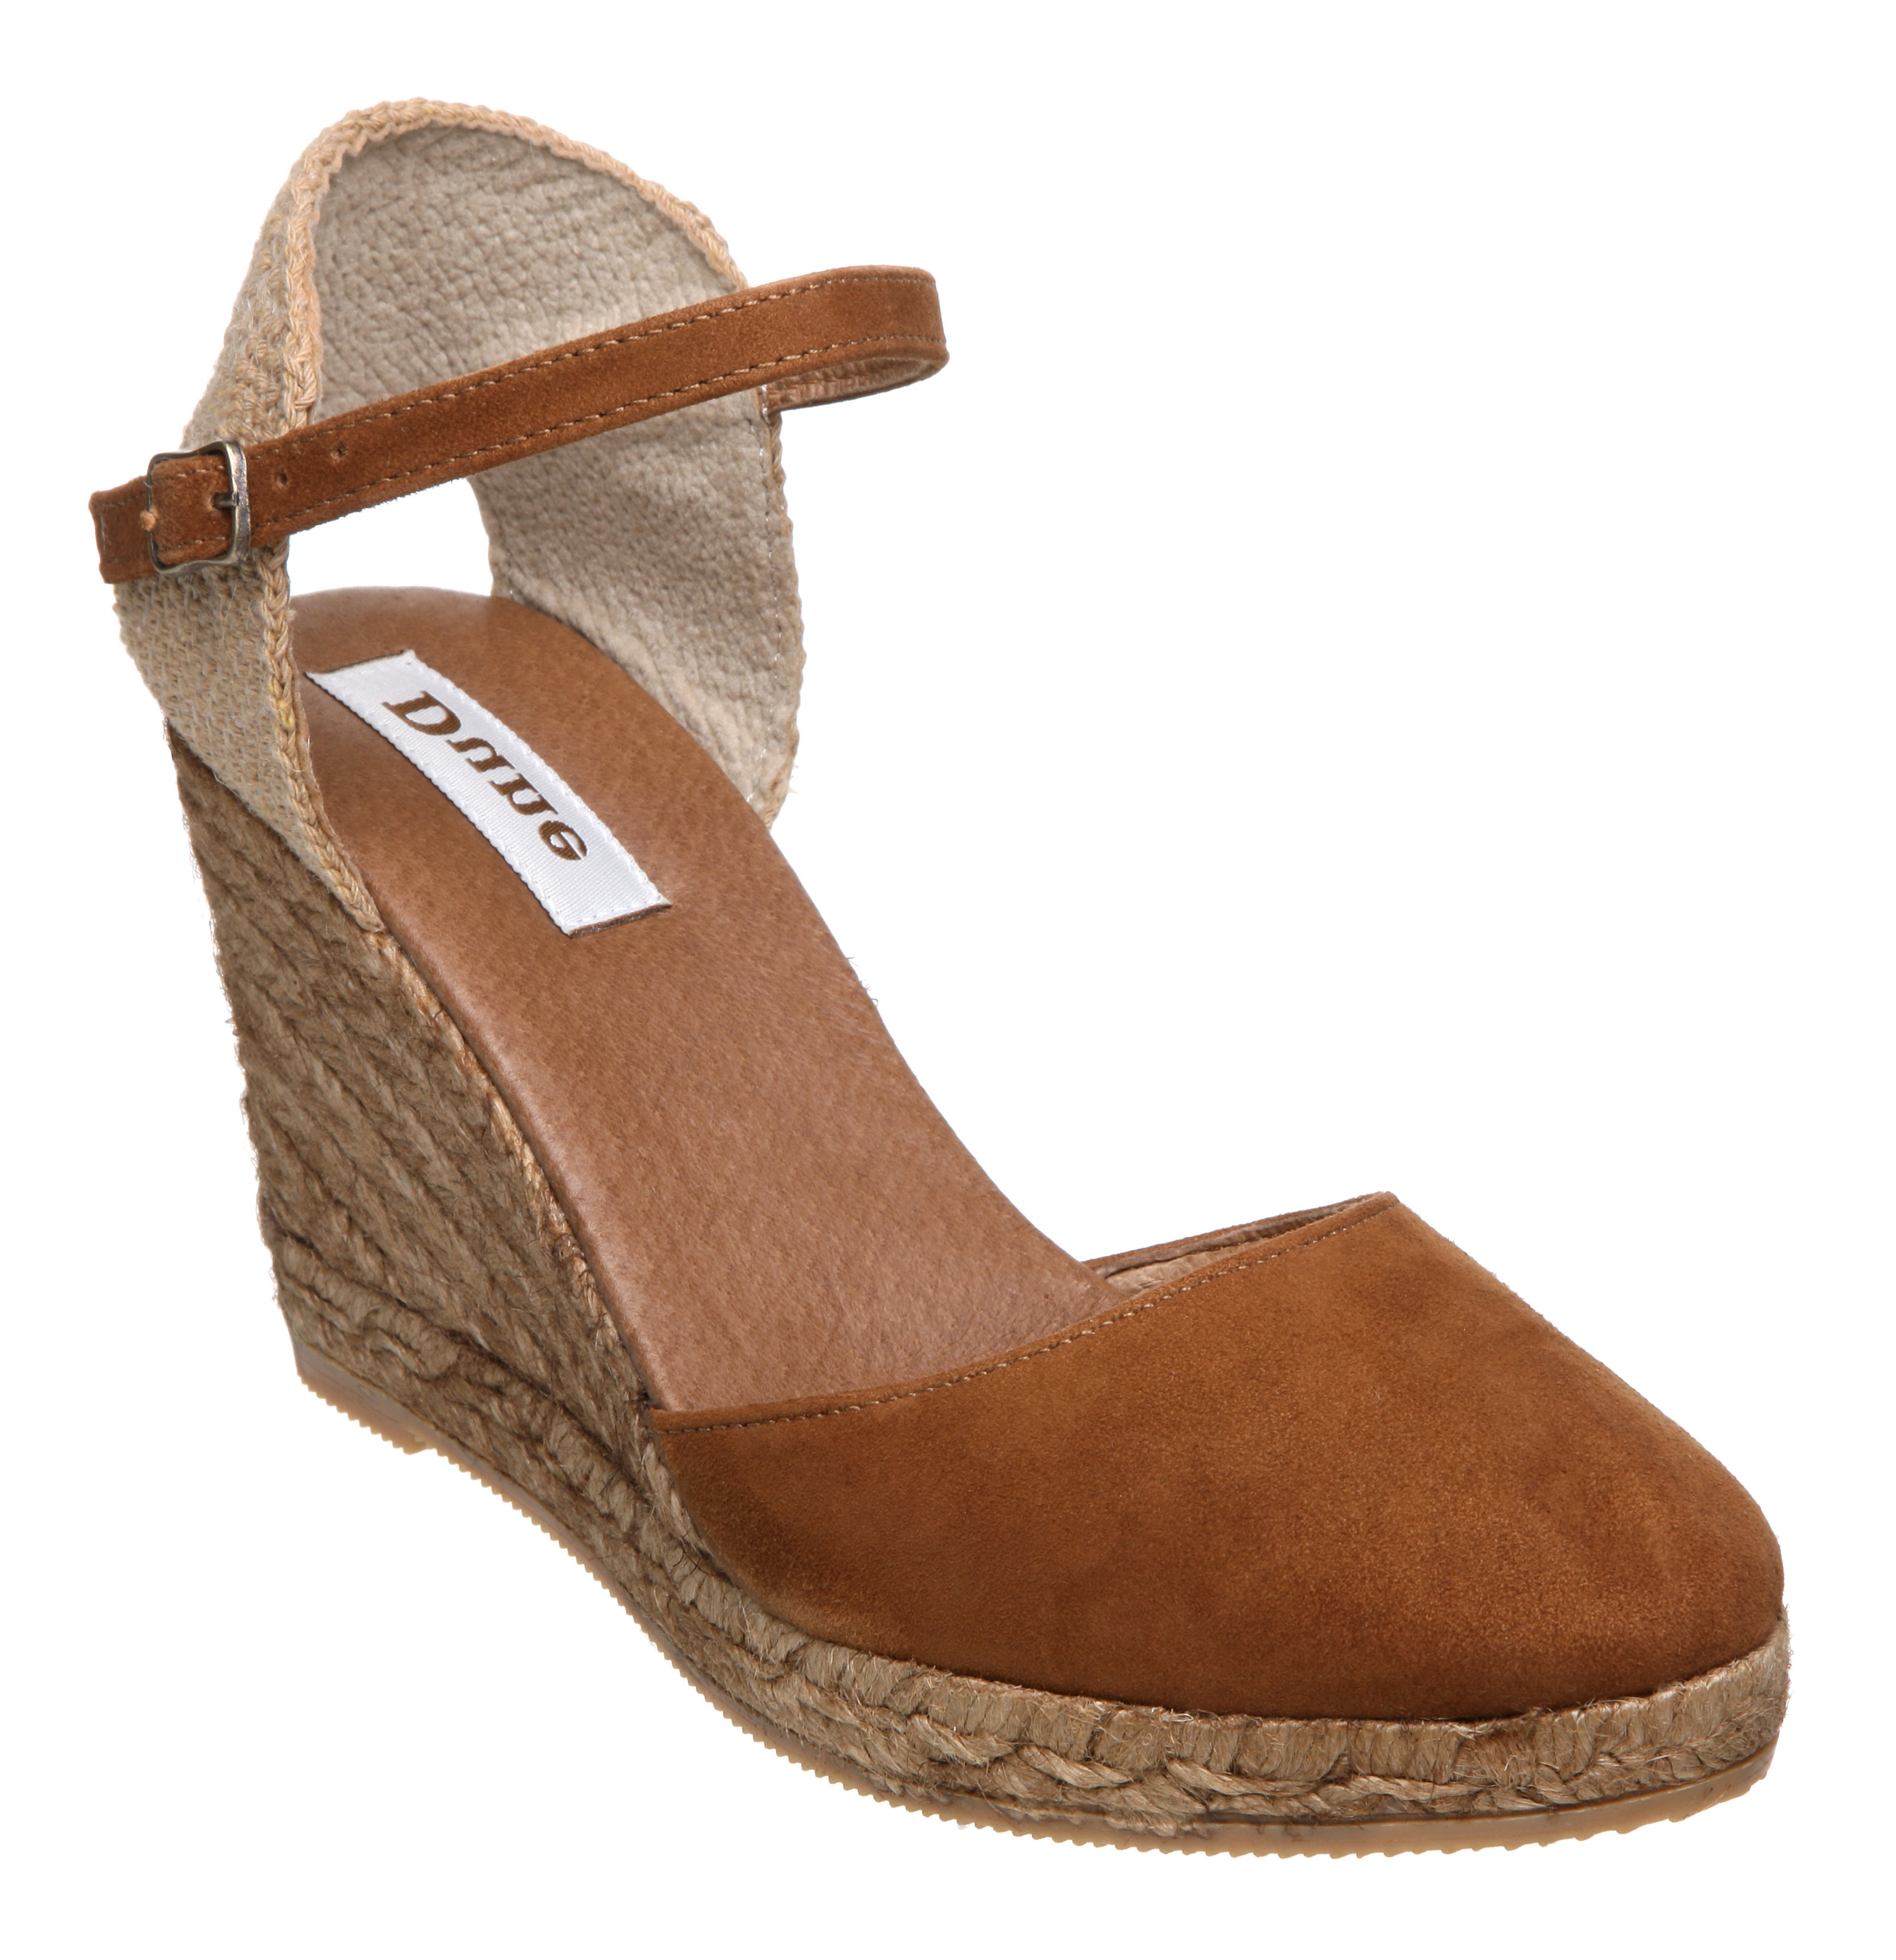 b79eb0c5bc15 Beige Sandals  Beige Suede Wedge Sandals